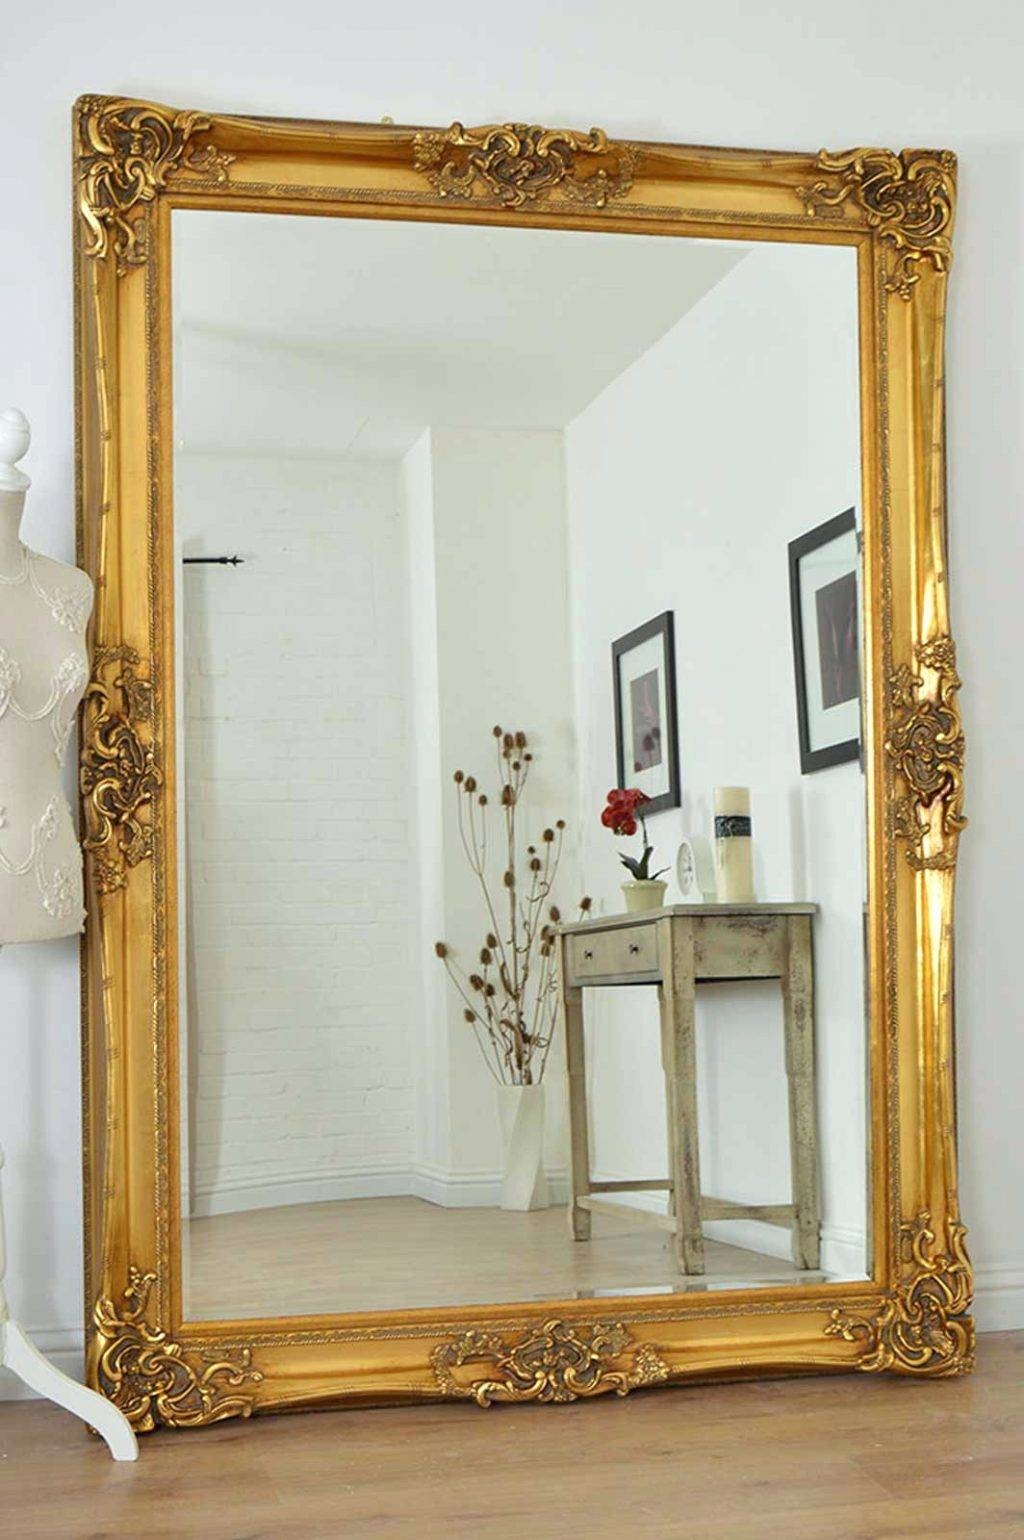 Wall Mirrors ~ Large Gold Very Ornate Antique Design Wall Mirror pertaining to Long Silver Mirrors (Image 13 of 15)